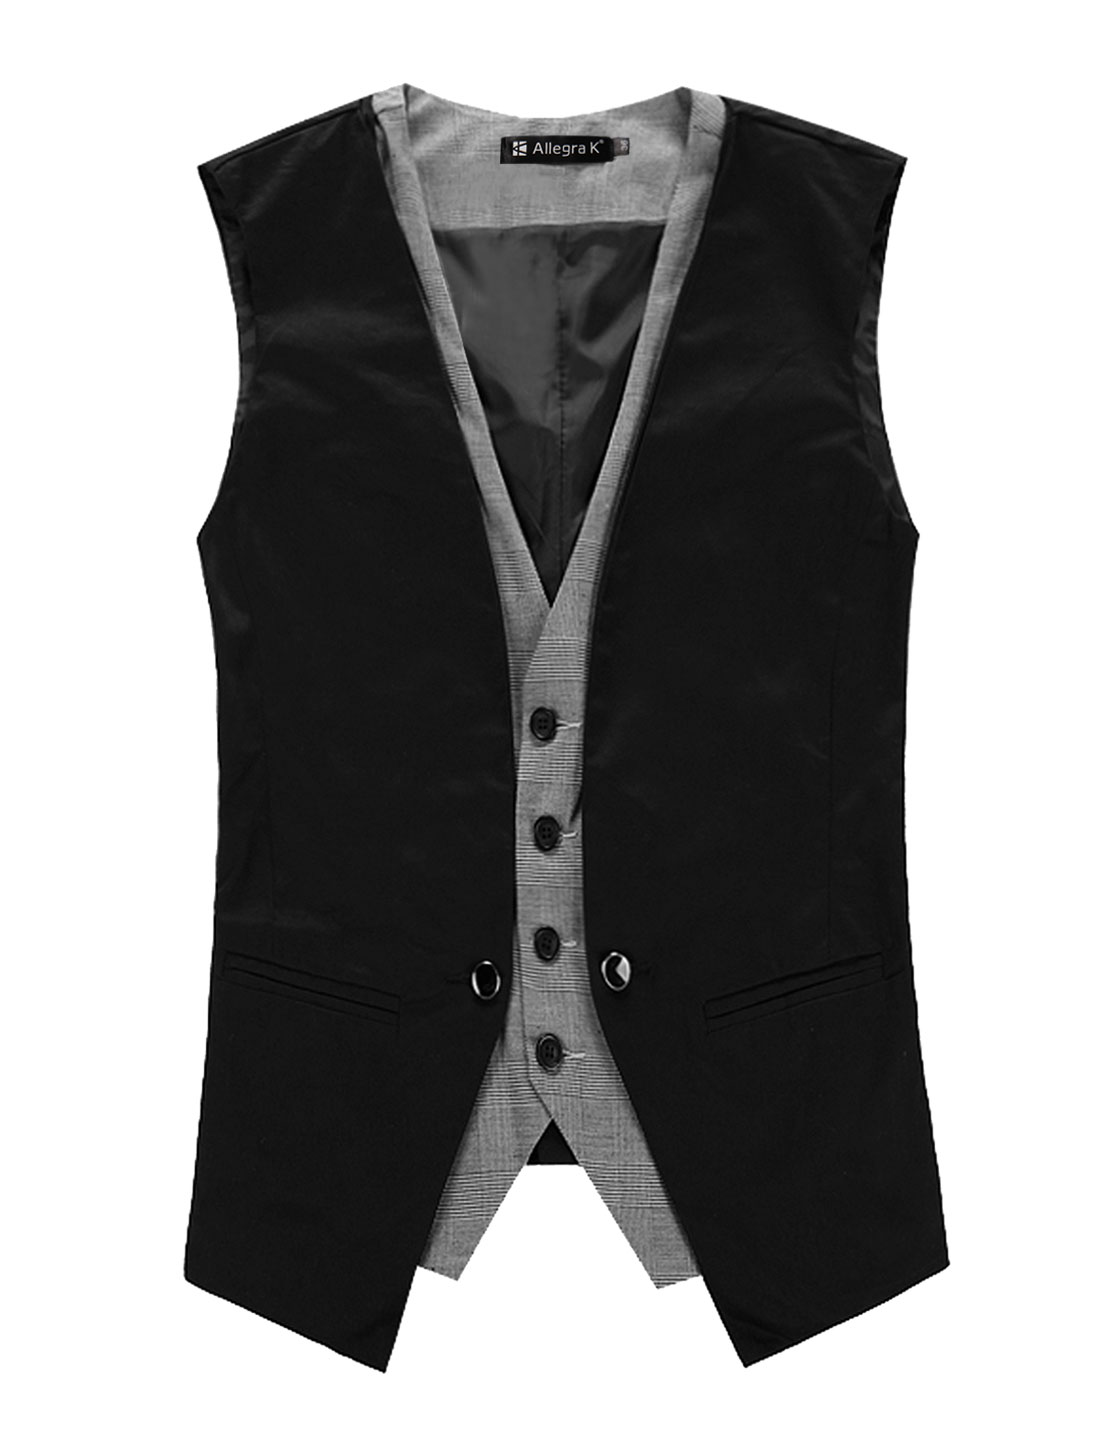 Men V Neck Sleeveless Plaid Button Down Closure Layered Waistcoat Vest Black M